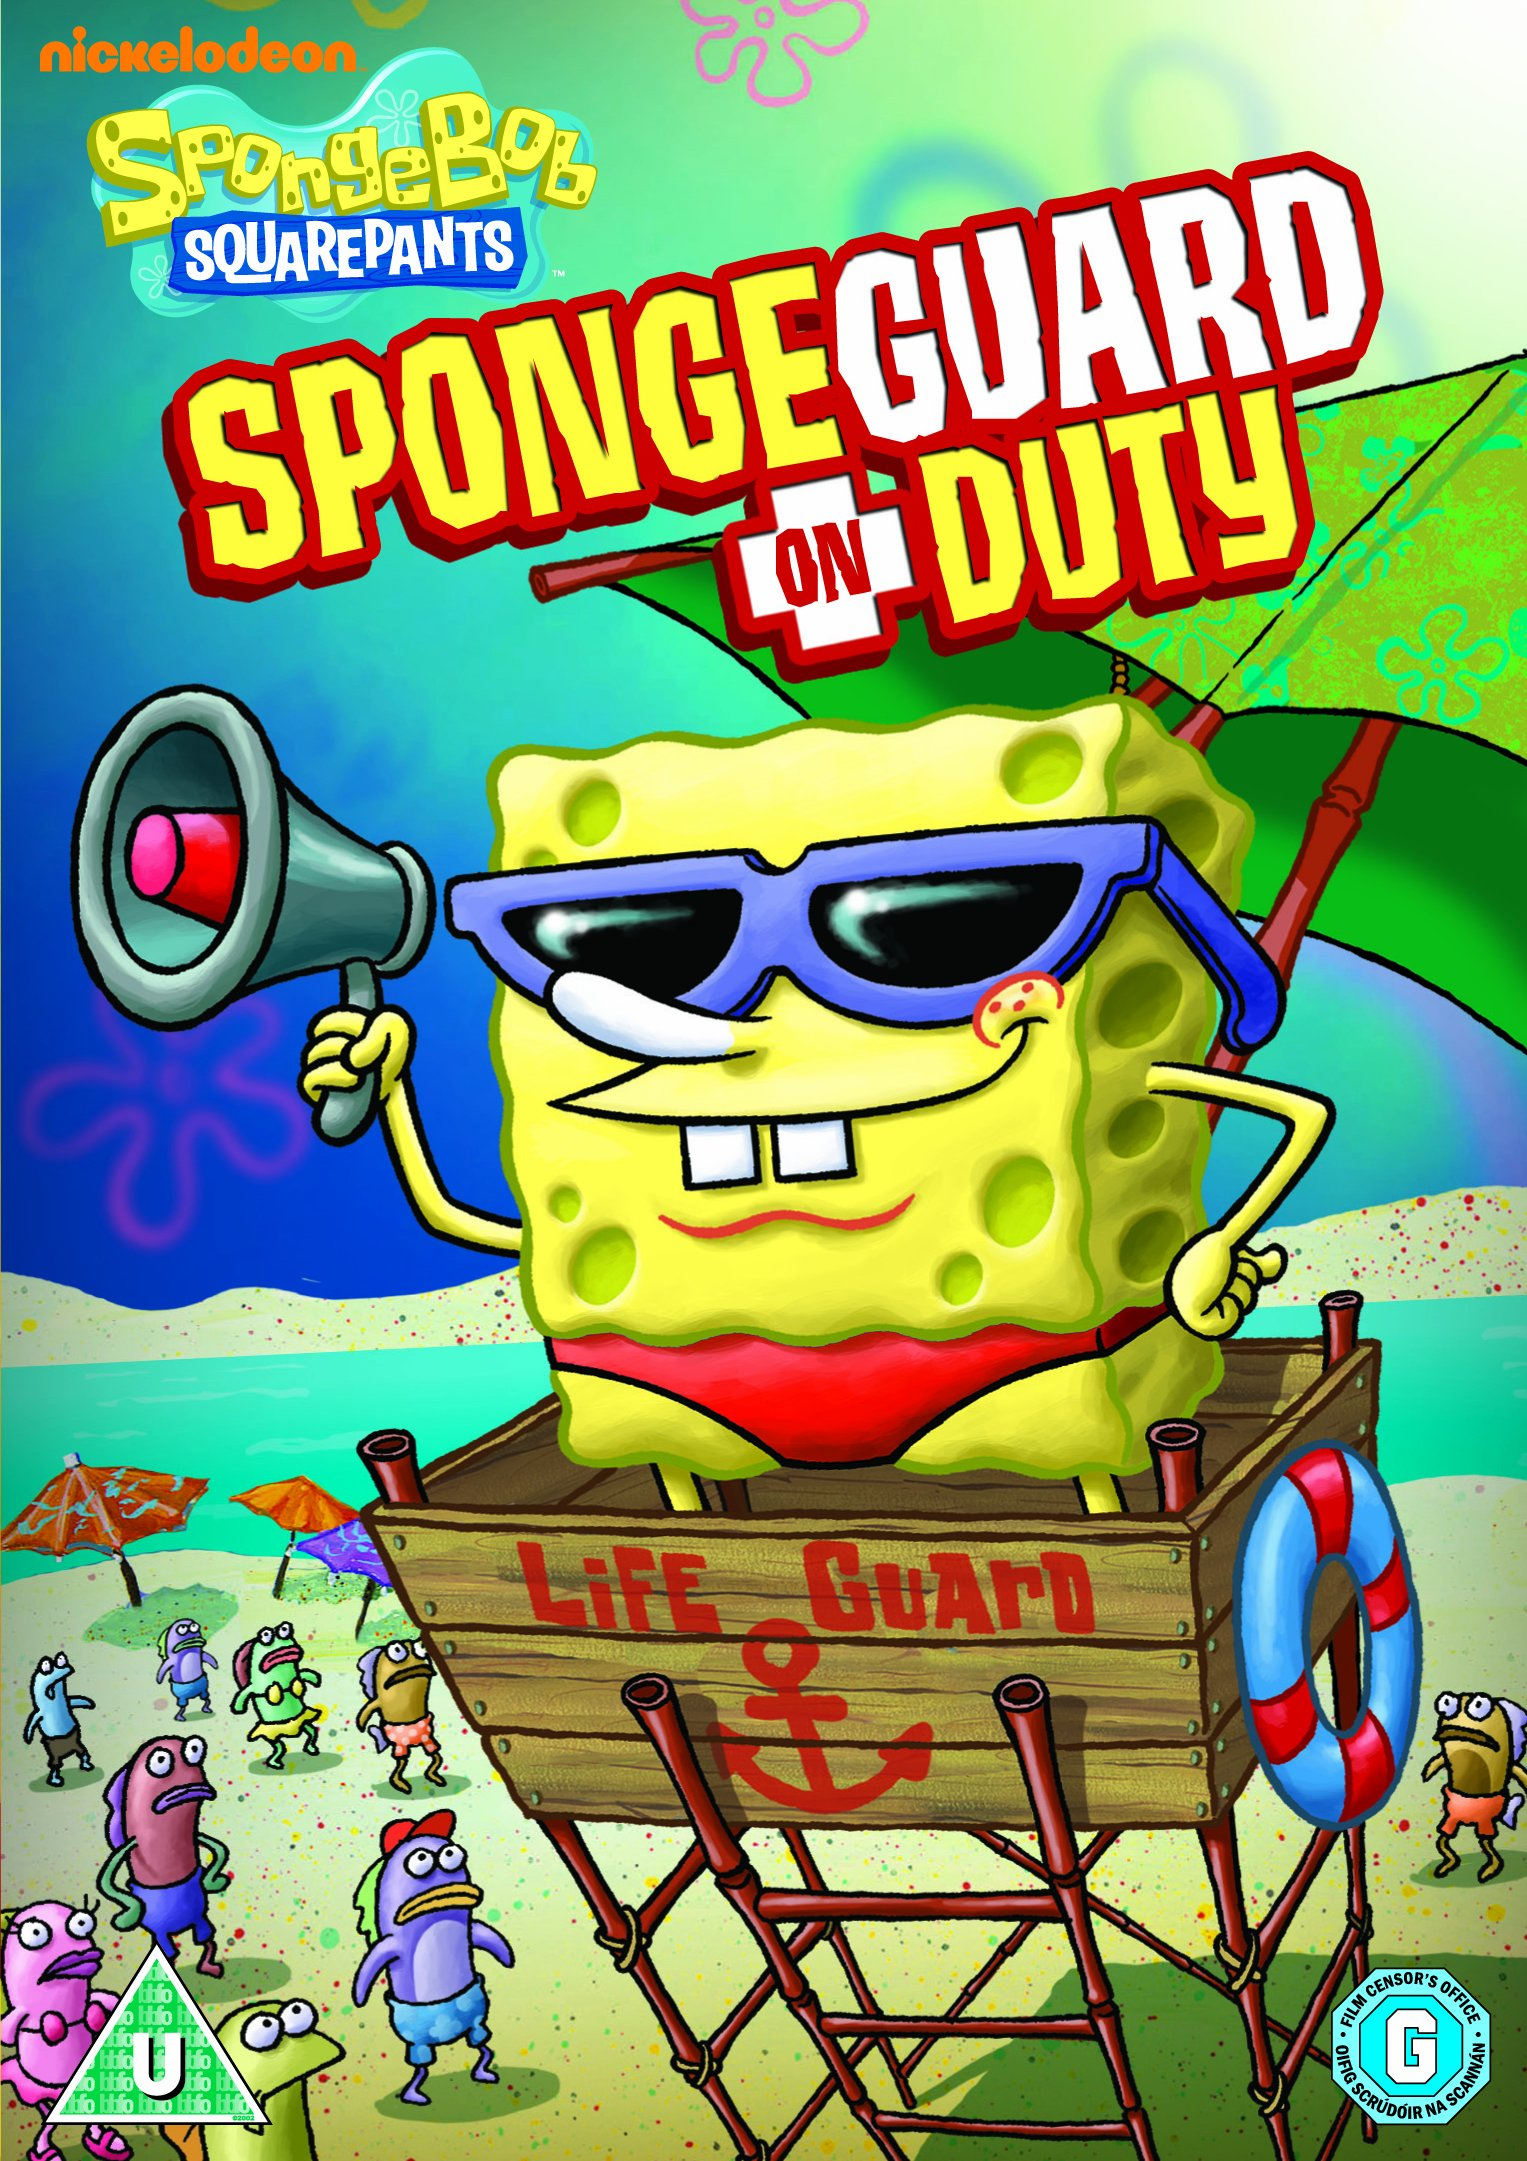 spongebob dvd spongeguard on duty pictures to pin on